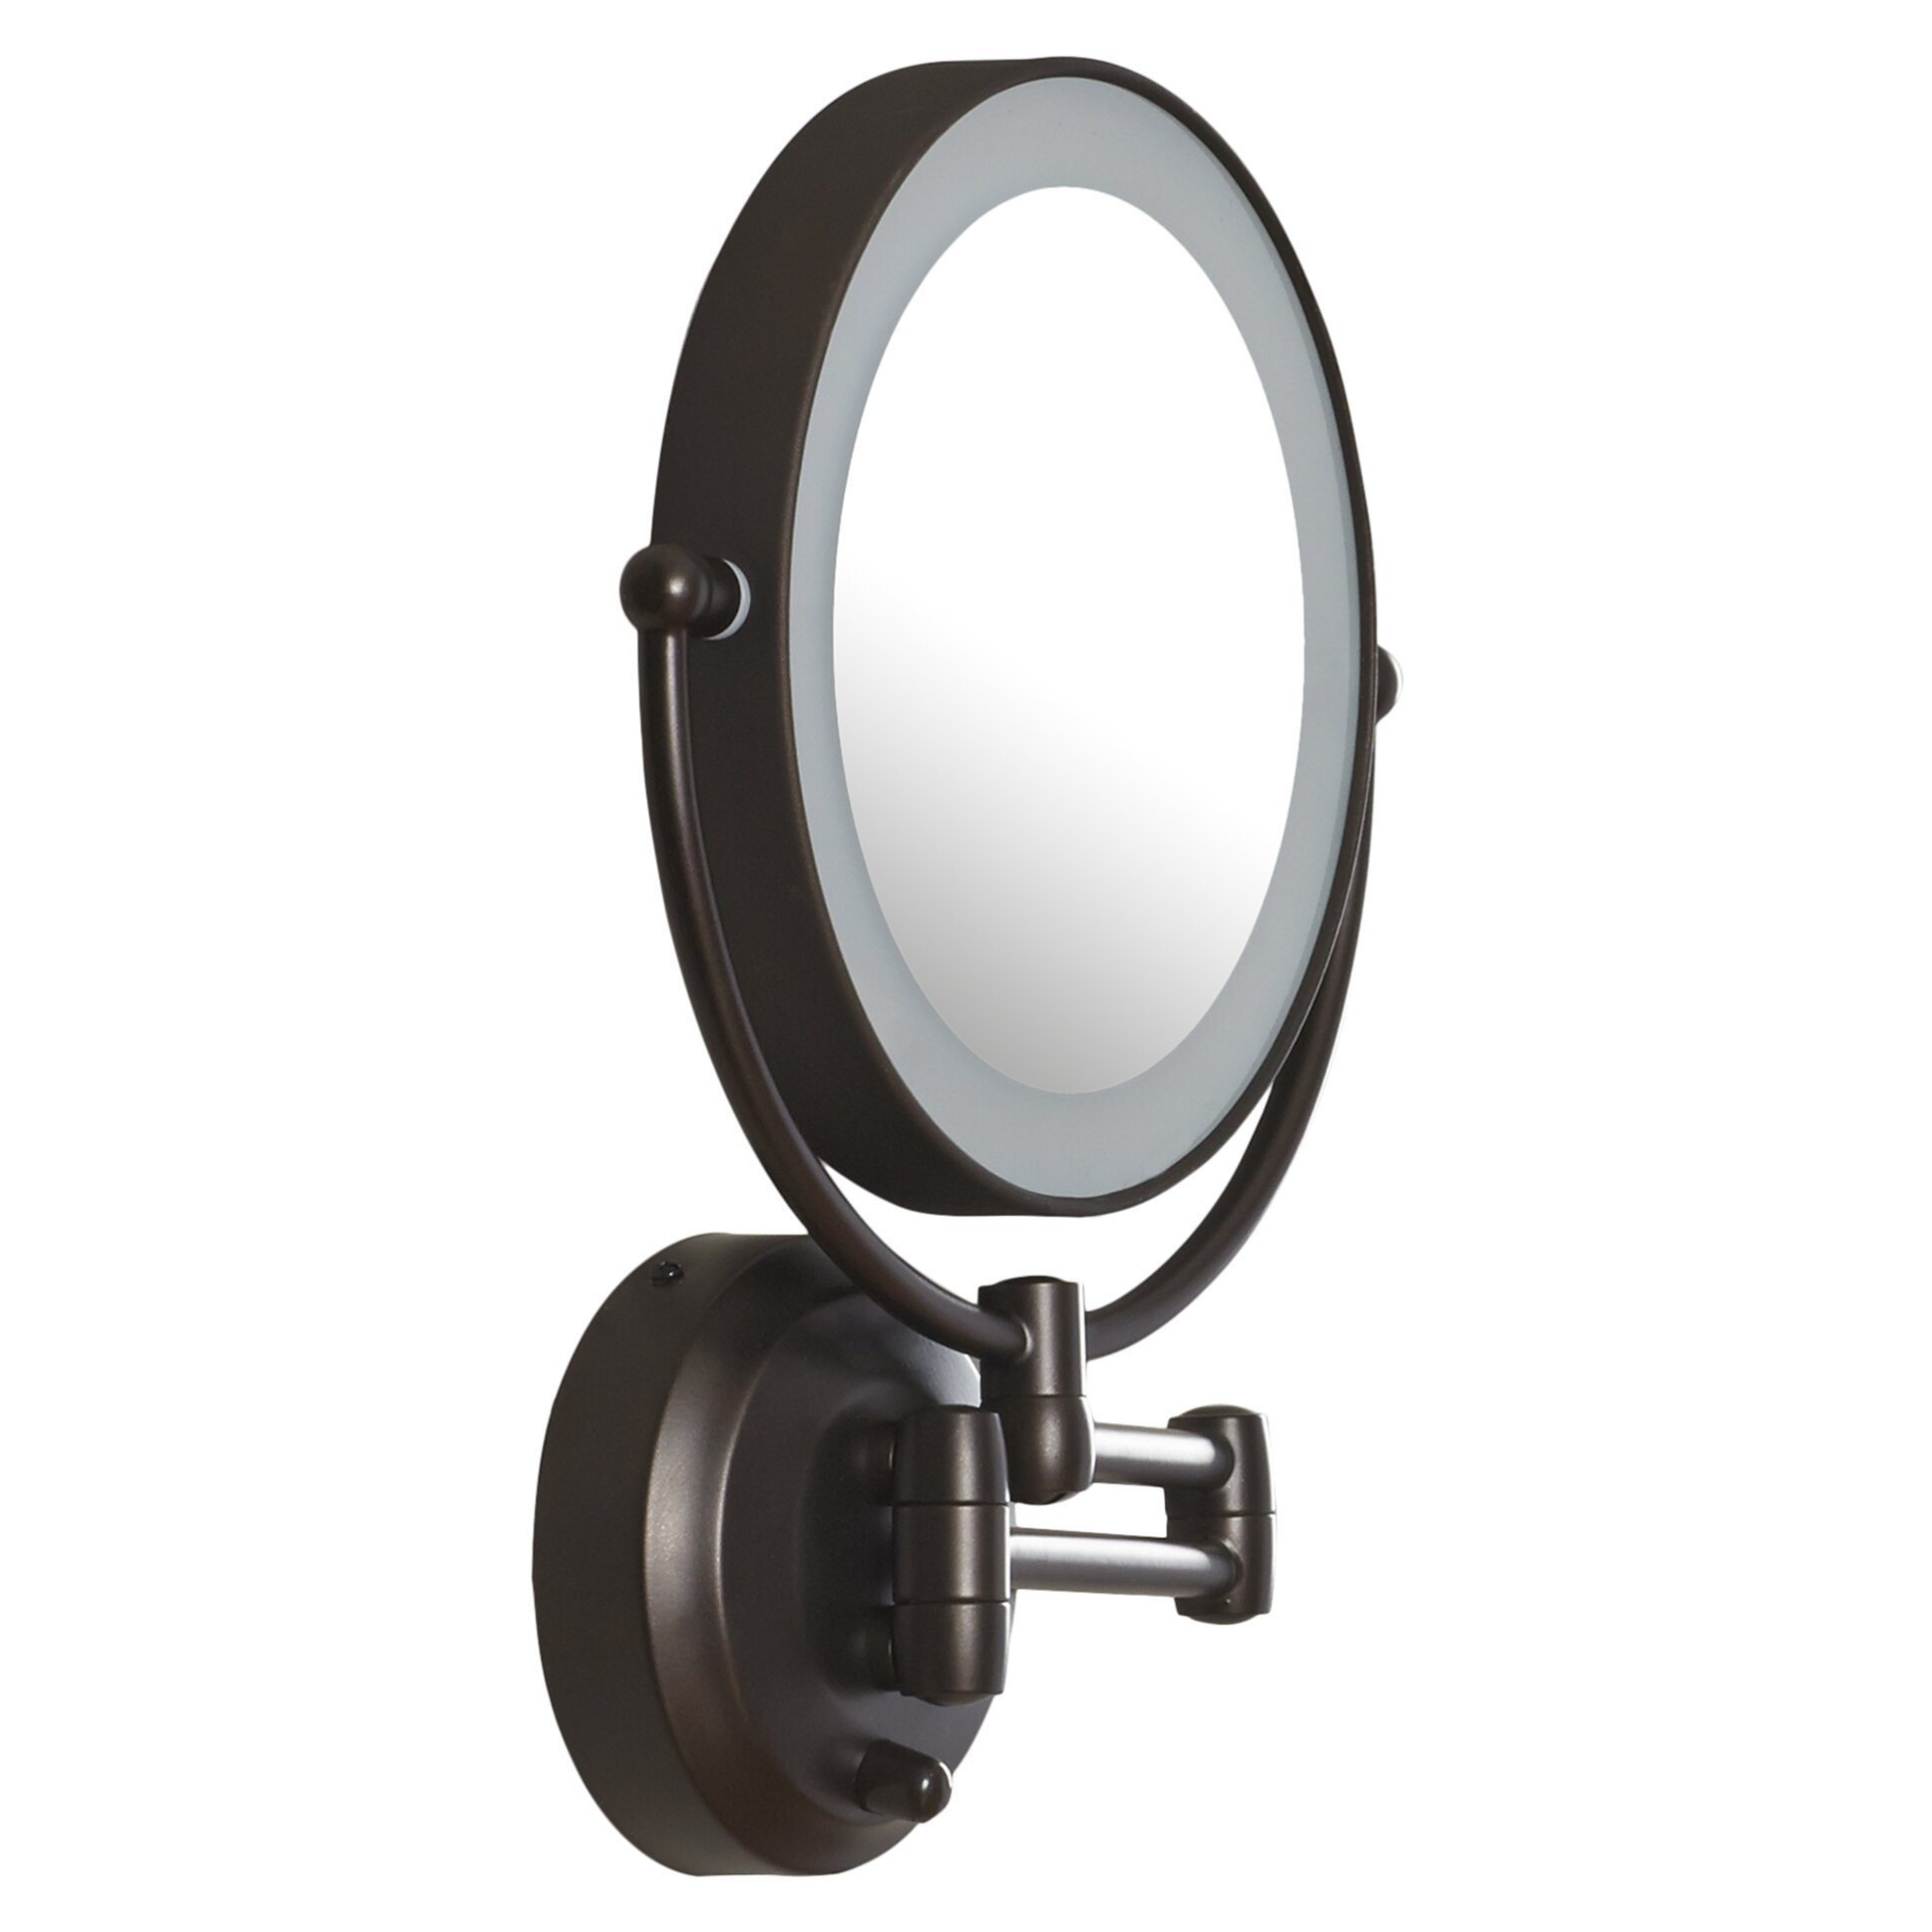 Zadro LED Lighted 1X/10X Magnification Wall Mount Mirror